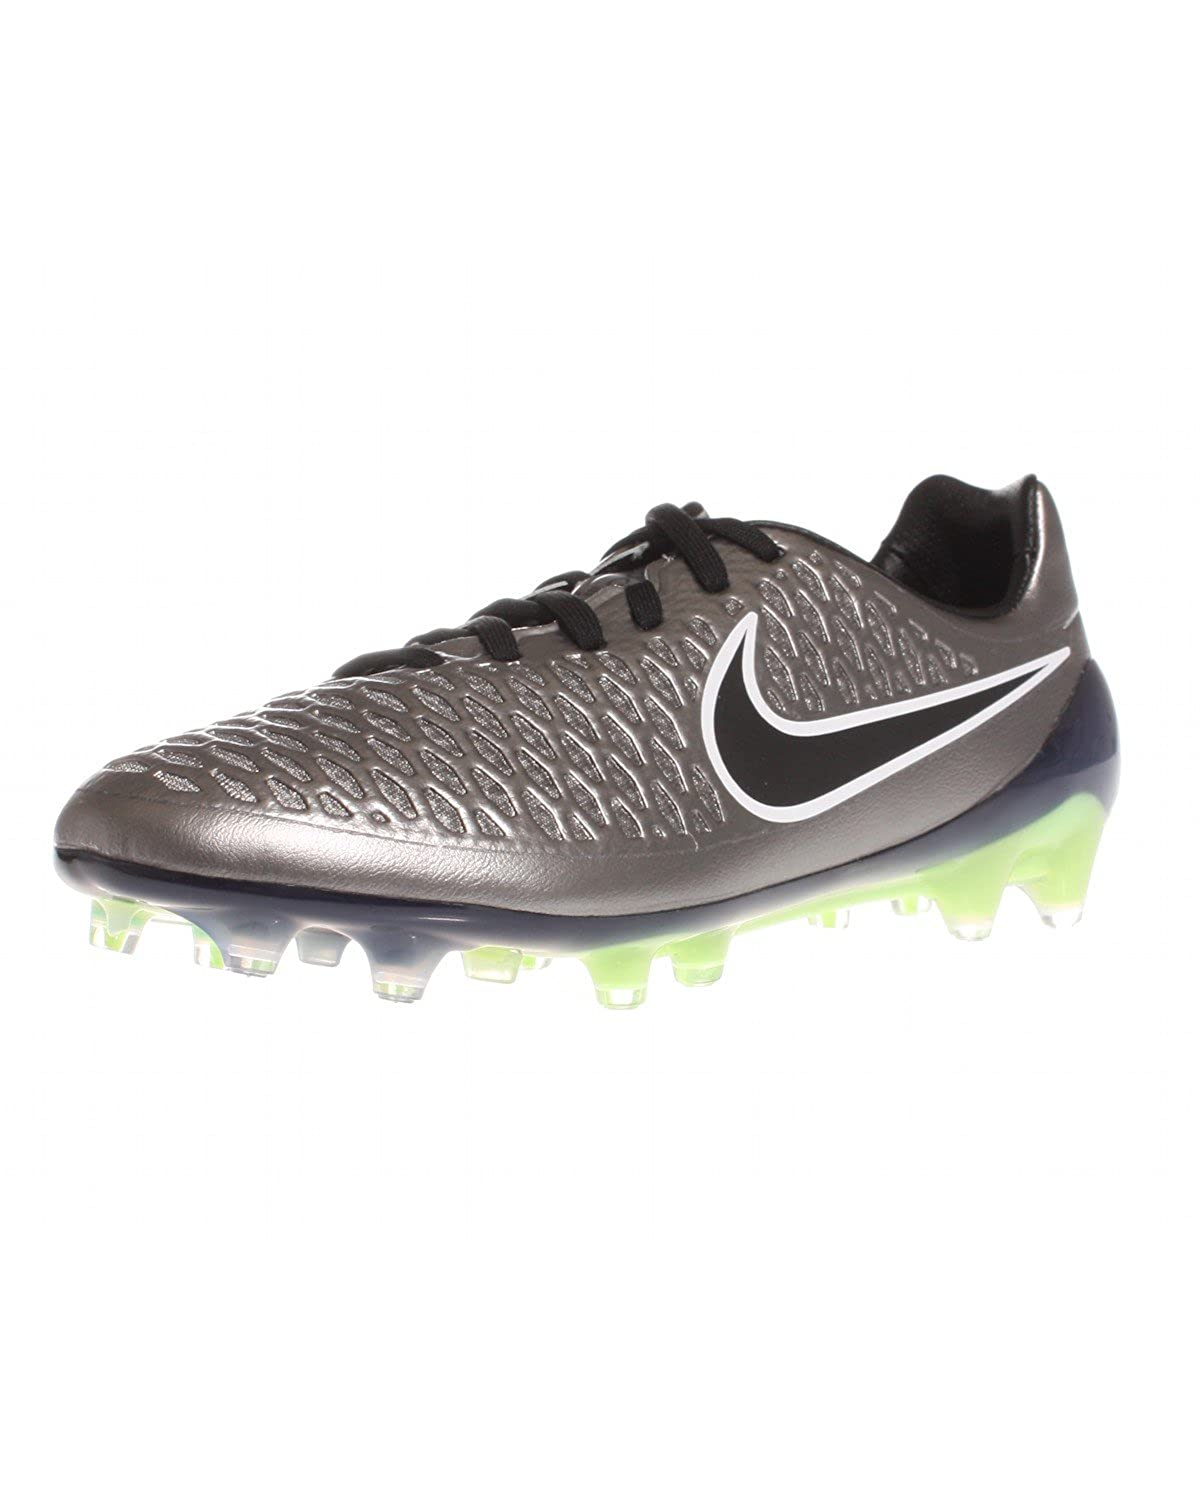 promo code 9feea 5b1bc Amazon.com  NIKE Magista Opus FG Mens Firm-Ground Soccer Cleat  Soccer